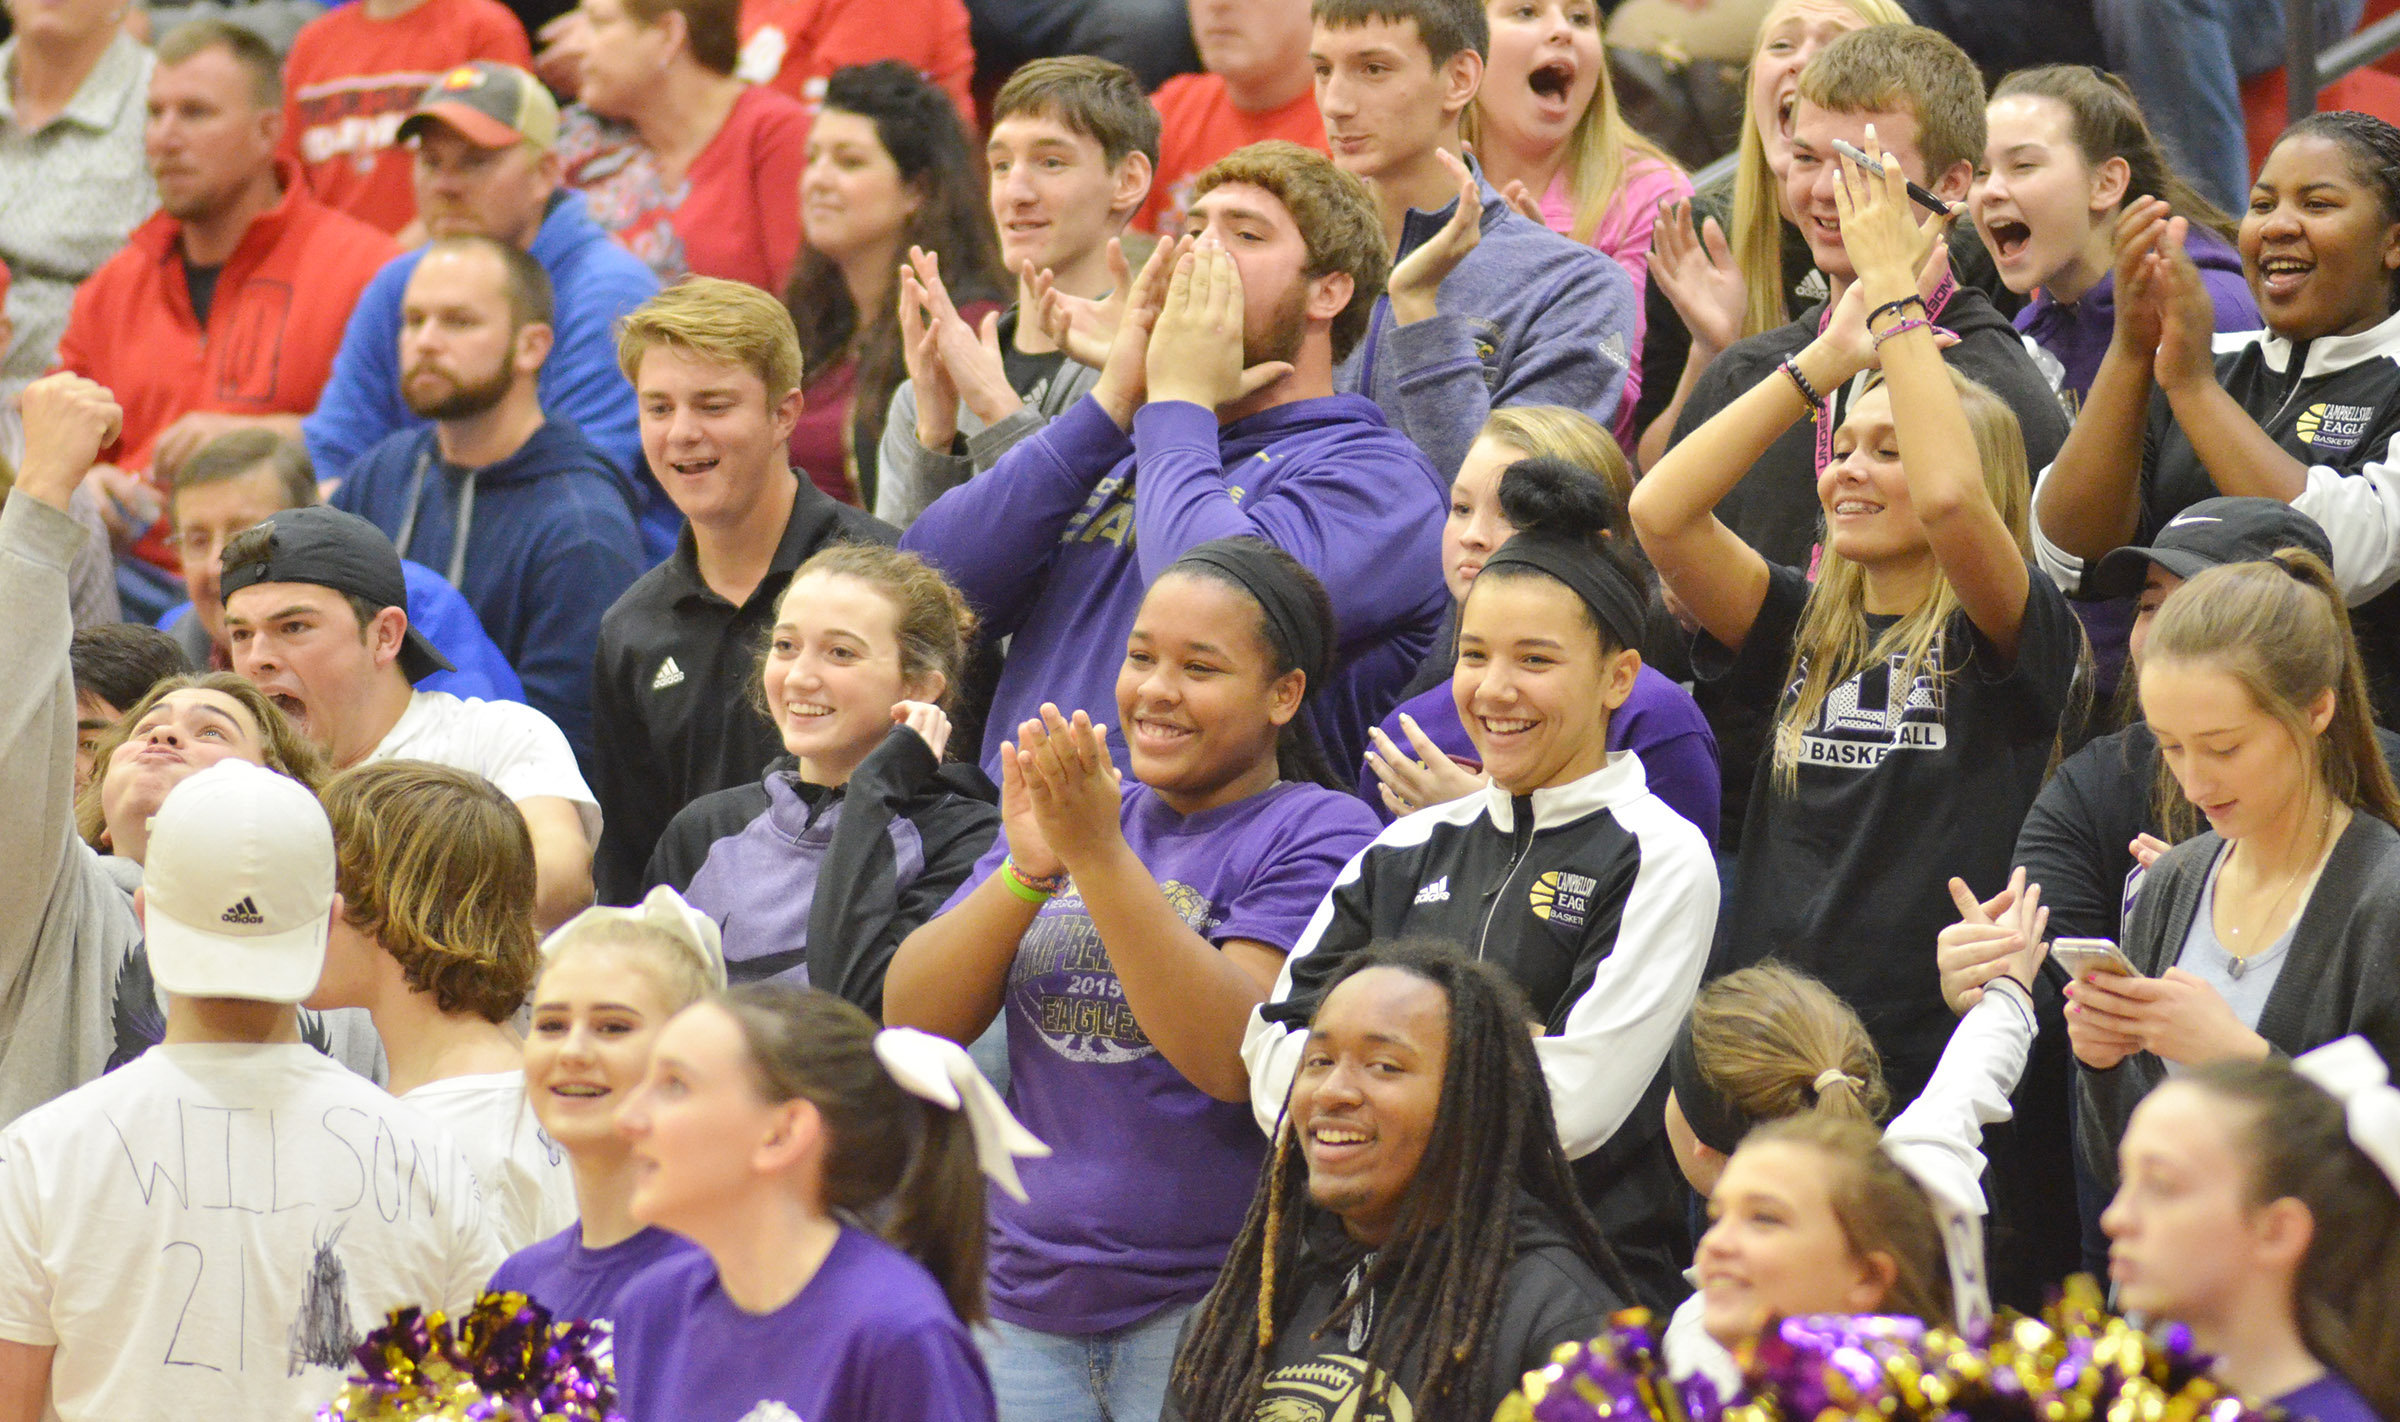 CHS students cheer for the Eagles.